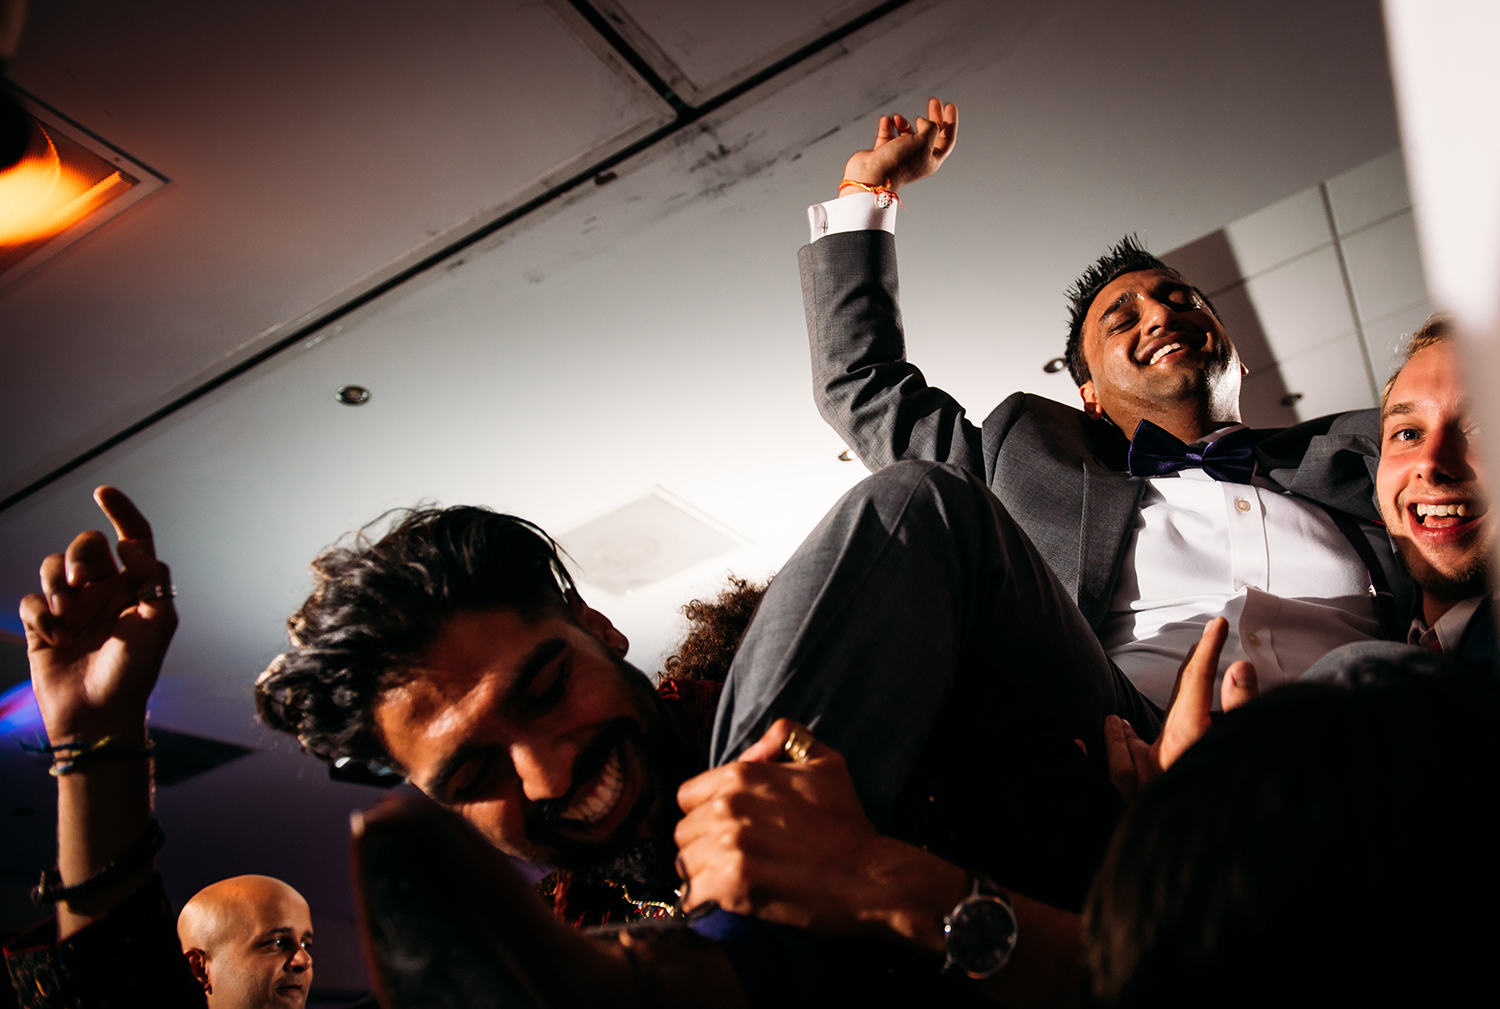 action photo of groom being lifted on the dancefloor